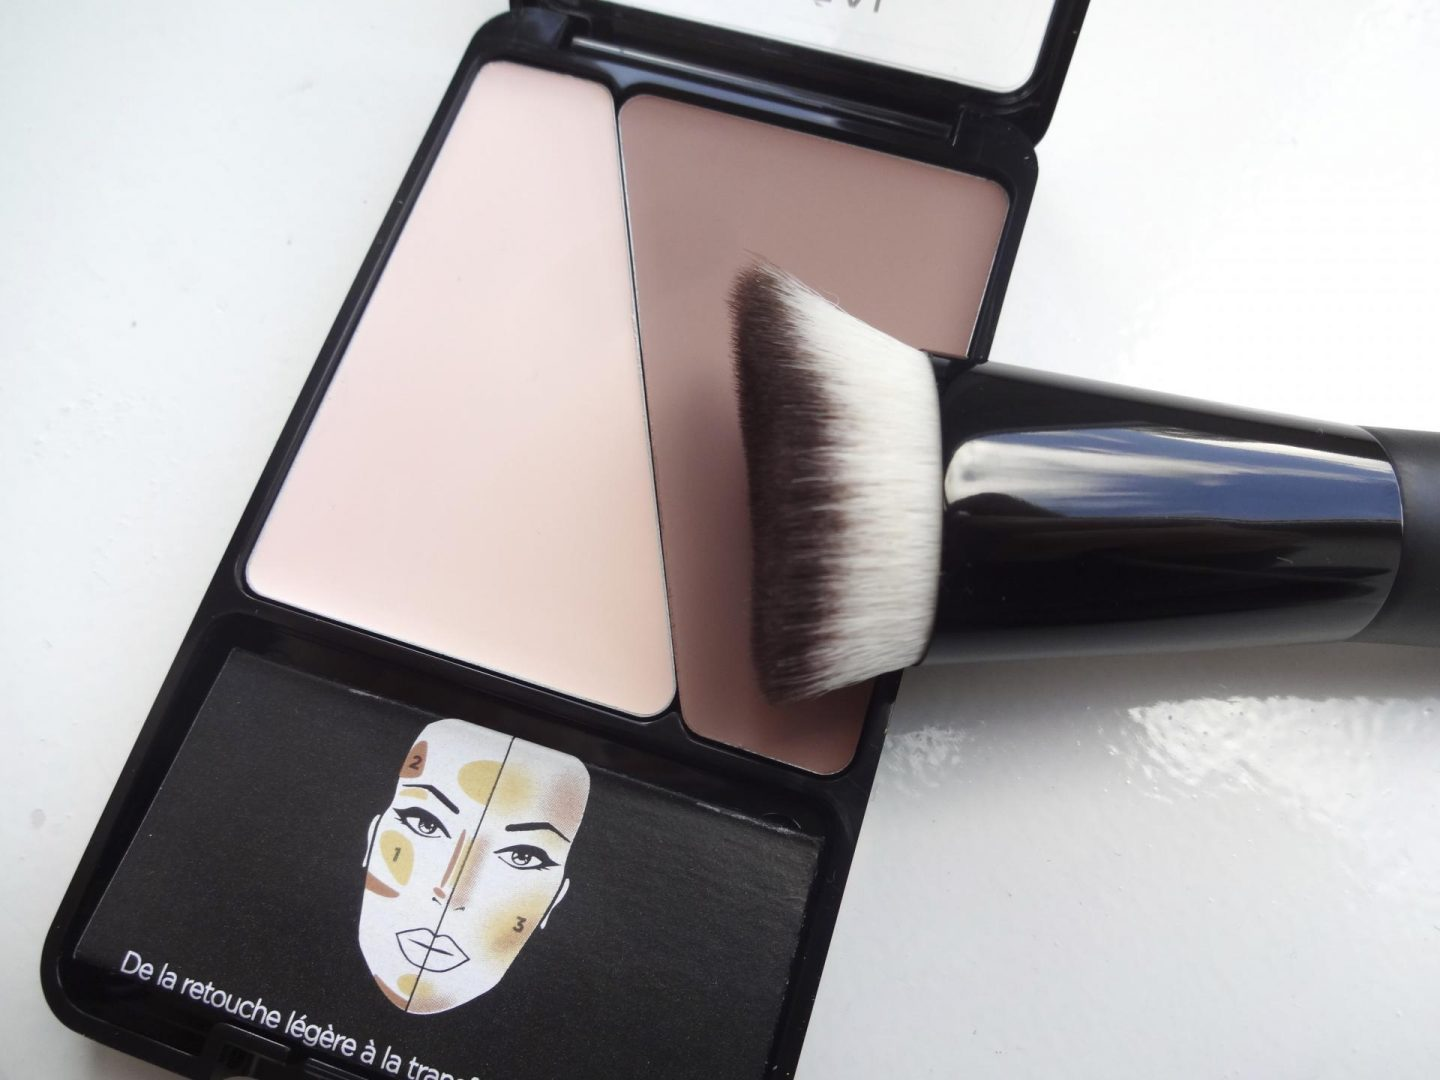 Contouring 101 with L'Oréal